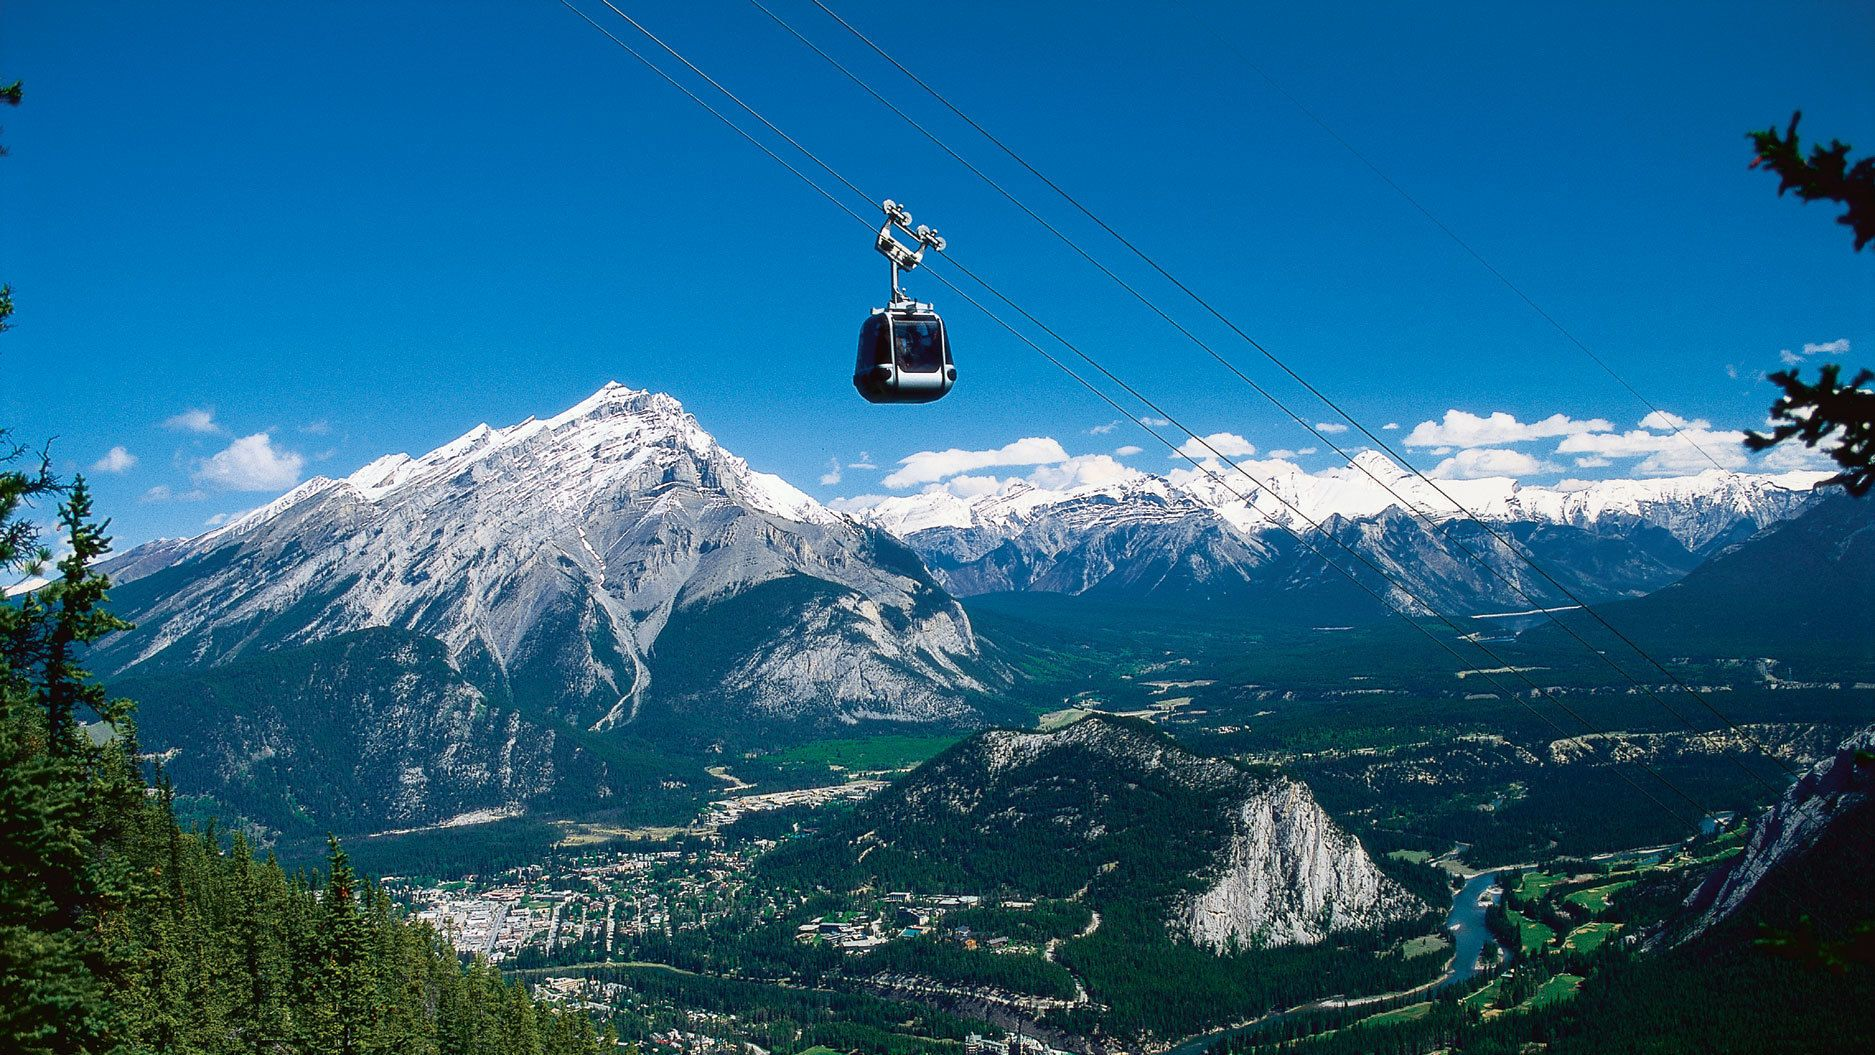 Hitch a ride on a gondola to Sulphur Mountain for a unique view of the Canadian Rockies